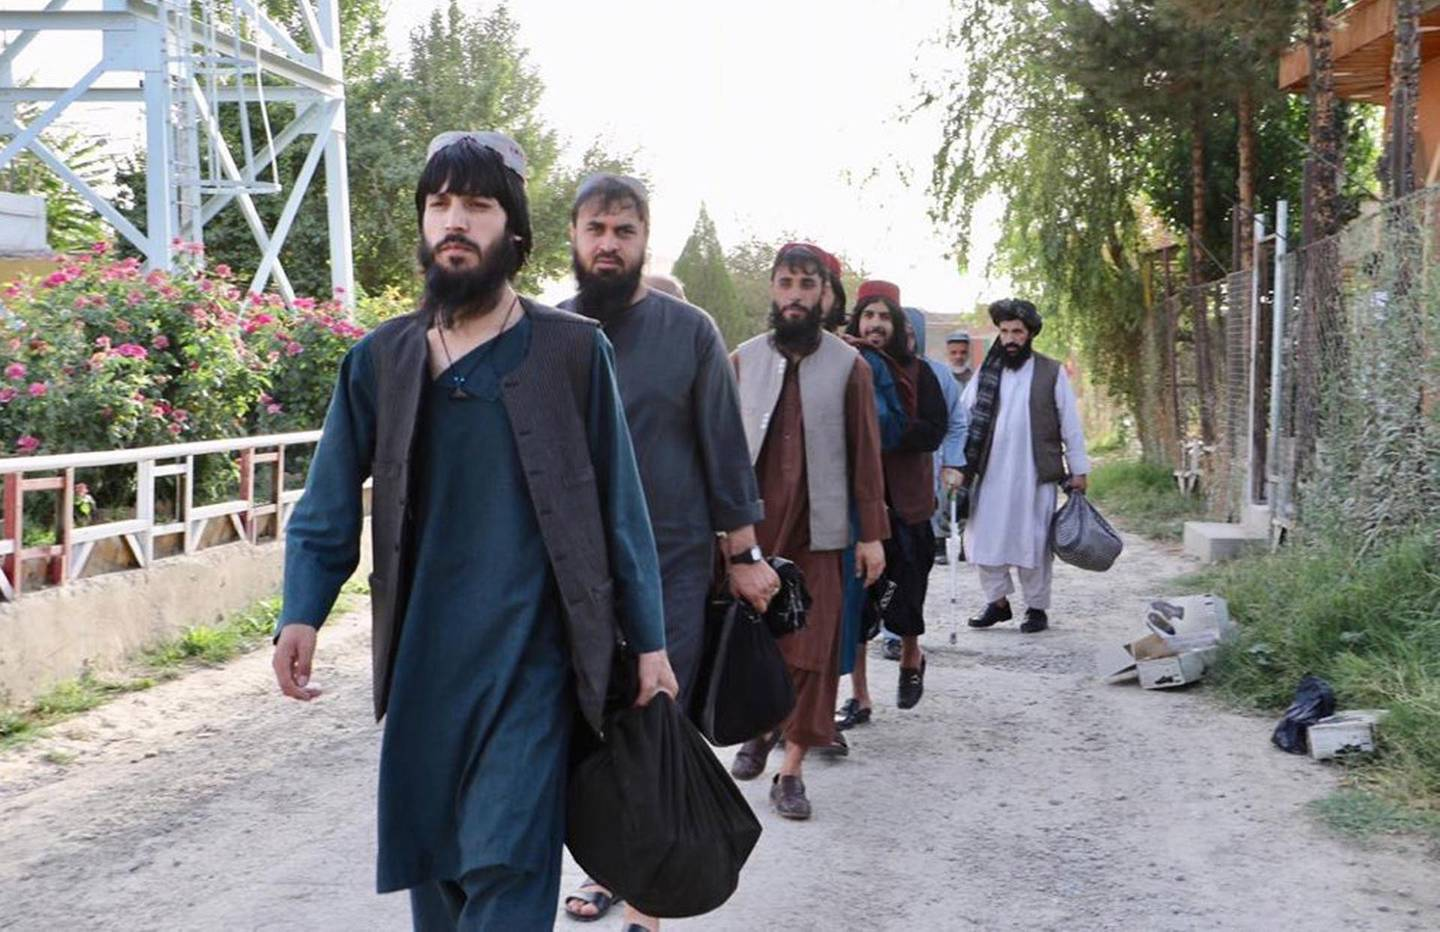 epa08602640 A handout photo made available by the National Security Council (NSC) of Afghanistan shows Taliban prisoners preparing to leave from a government prison in Kabul, Afghanistan, 13 August 2020 (issued 14 August 2020). Afghanistan's National Security Council announced that at least 80 Taliban prisoners out of 400 have been released from jail. The prisoners' release is a pre-condition for the intra-Afghan talks.  EPA/AFGHANISTAN NATIONAL SECURITY COUNCIL HANDOUT -- BEST QUALITY AVAILABLE -- HANDOUT EDITORIAL USE ONLY/NO SALES